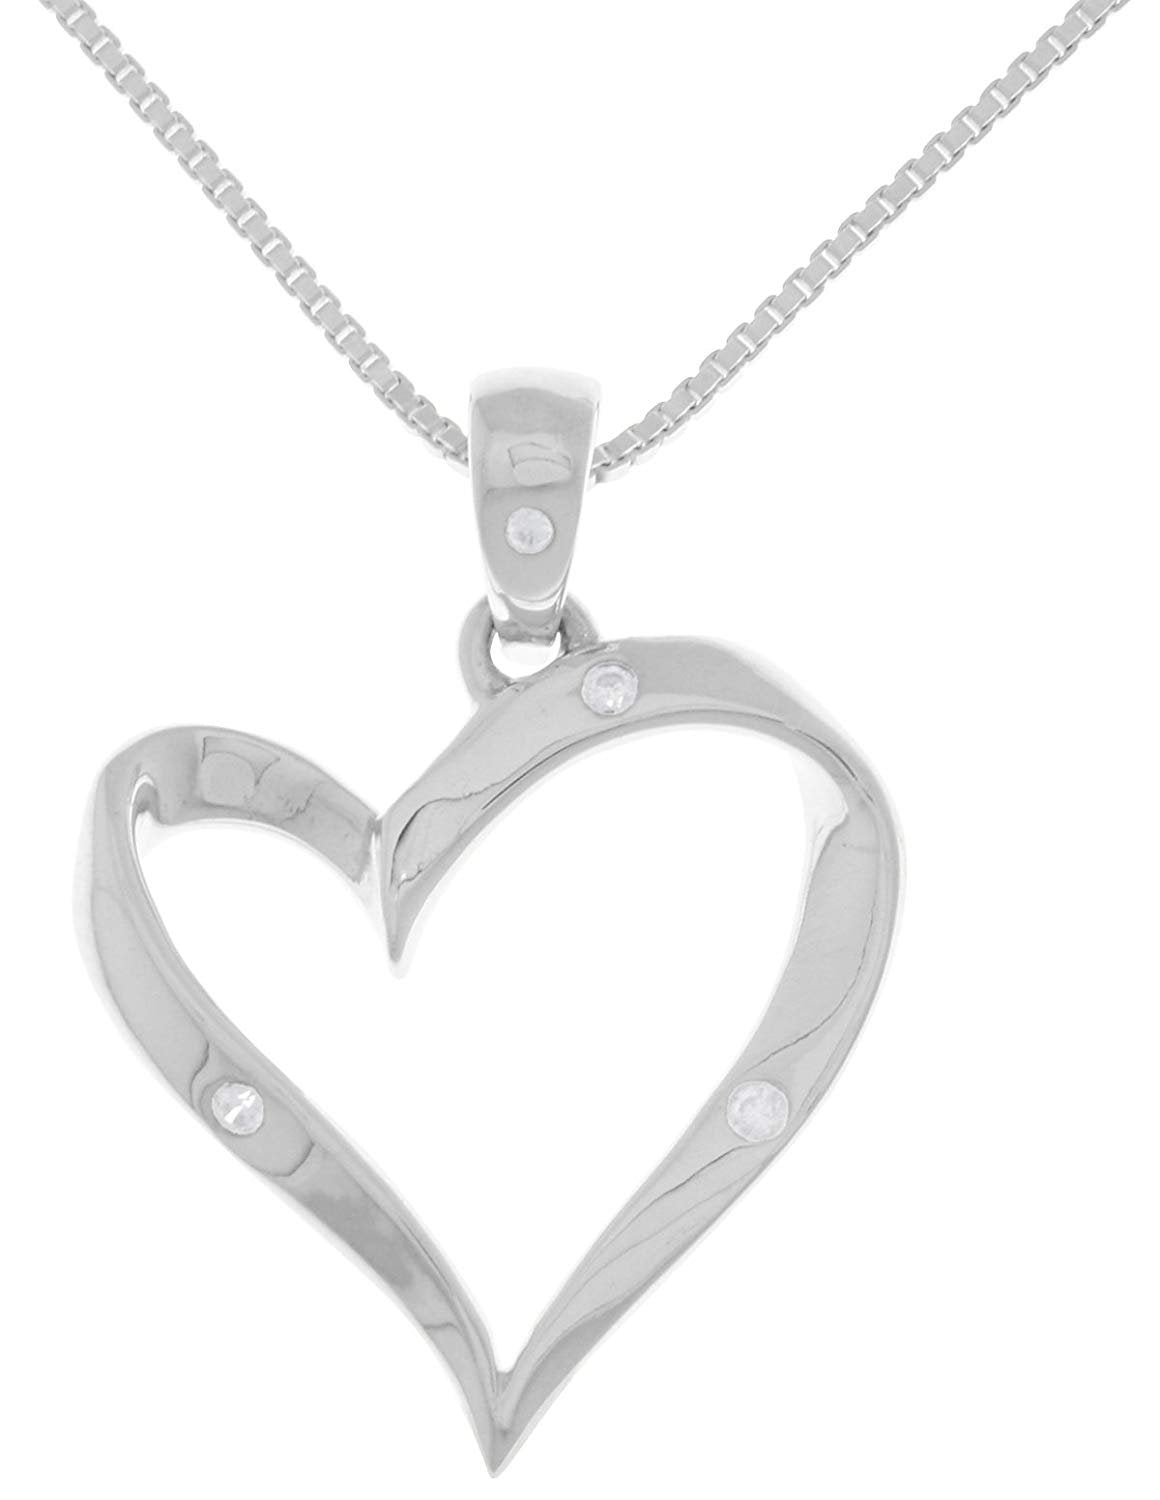 Jewelry Trends Sterling Silver Ribbon Heart Pendant with CZ on 18 Inch Box Chain Necklace